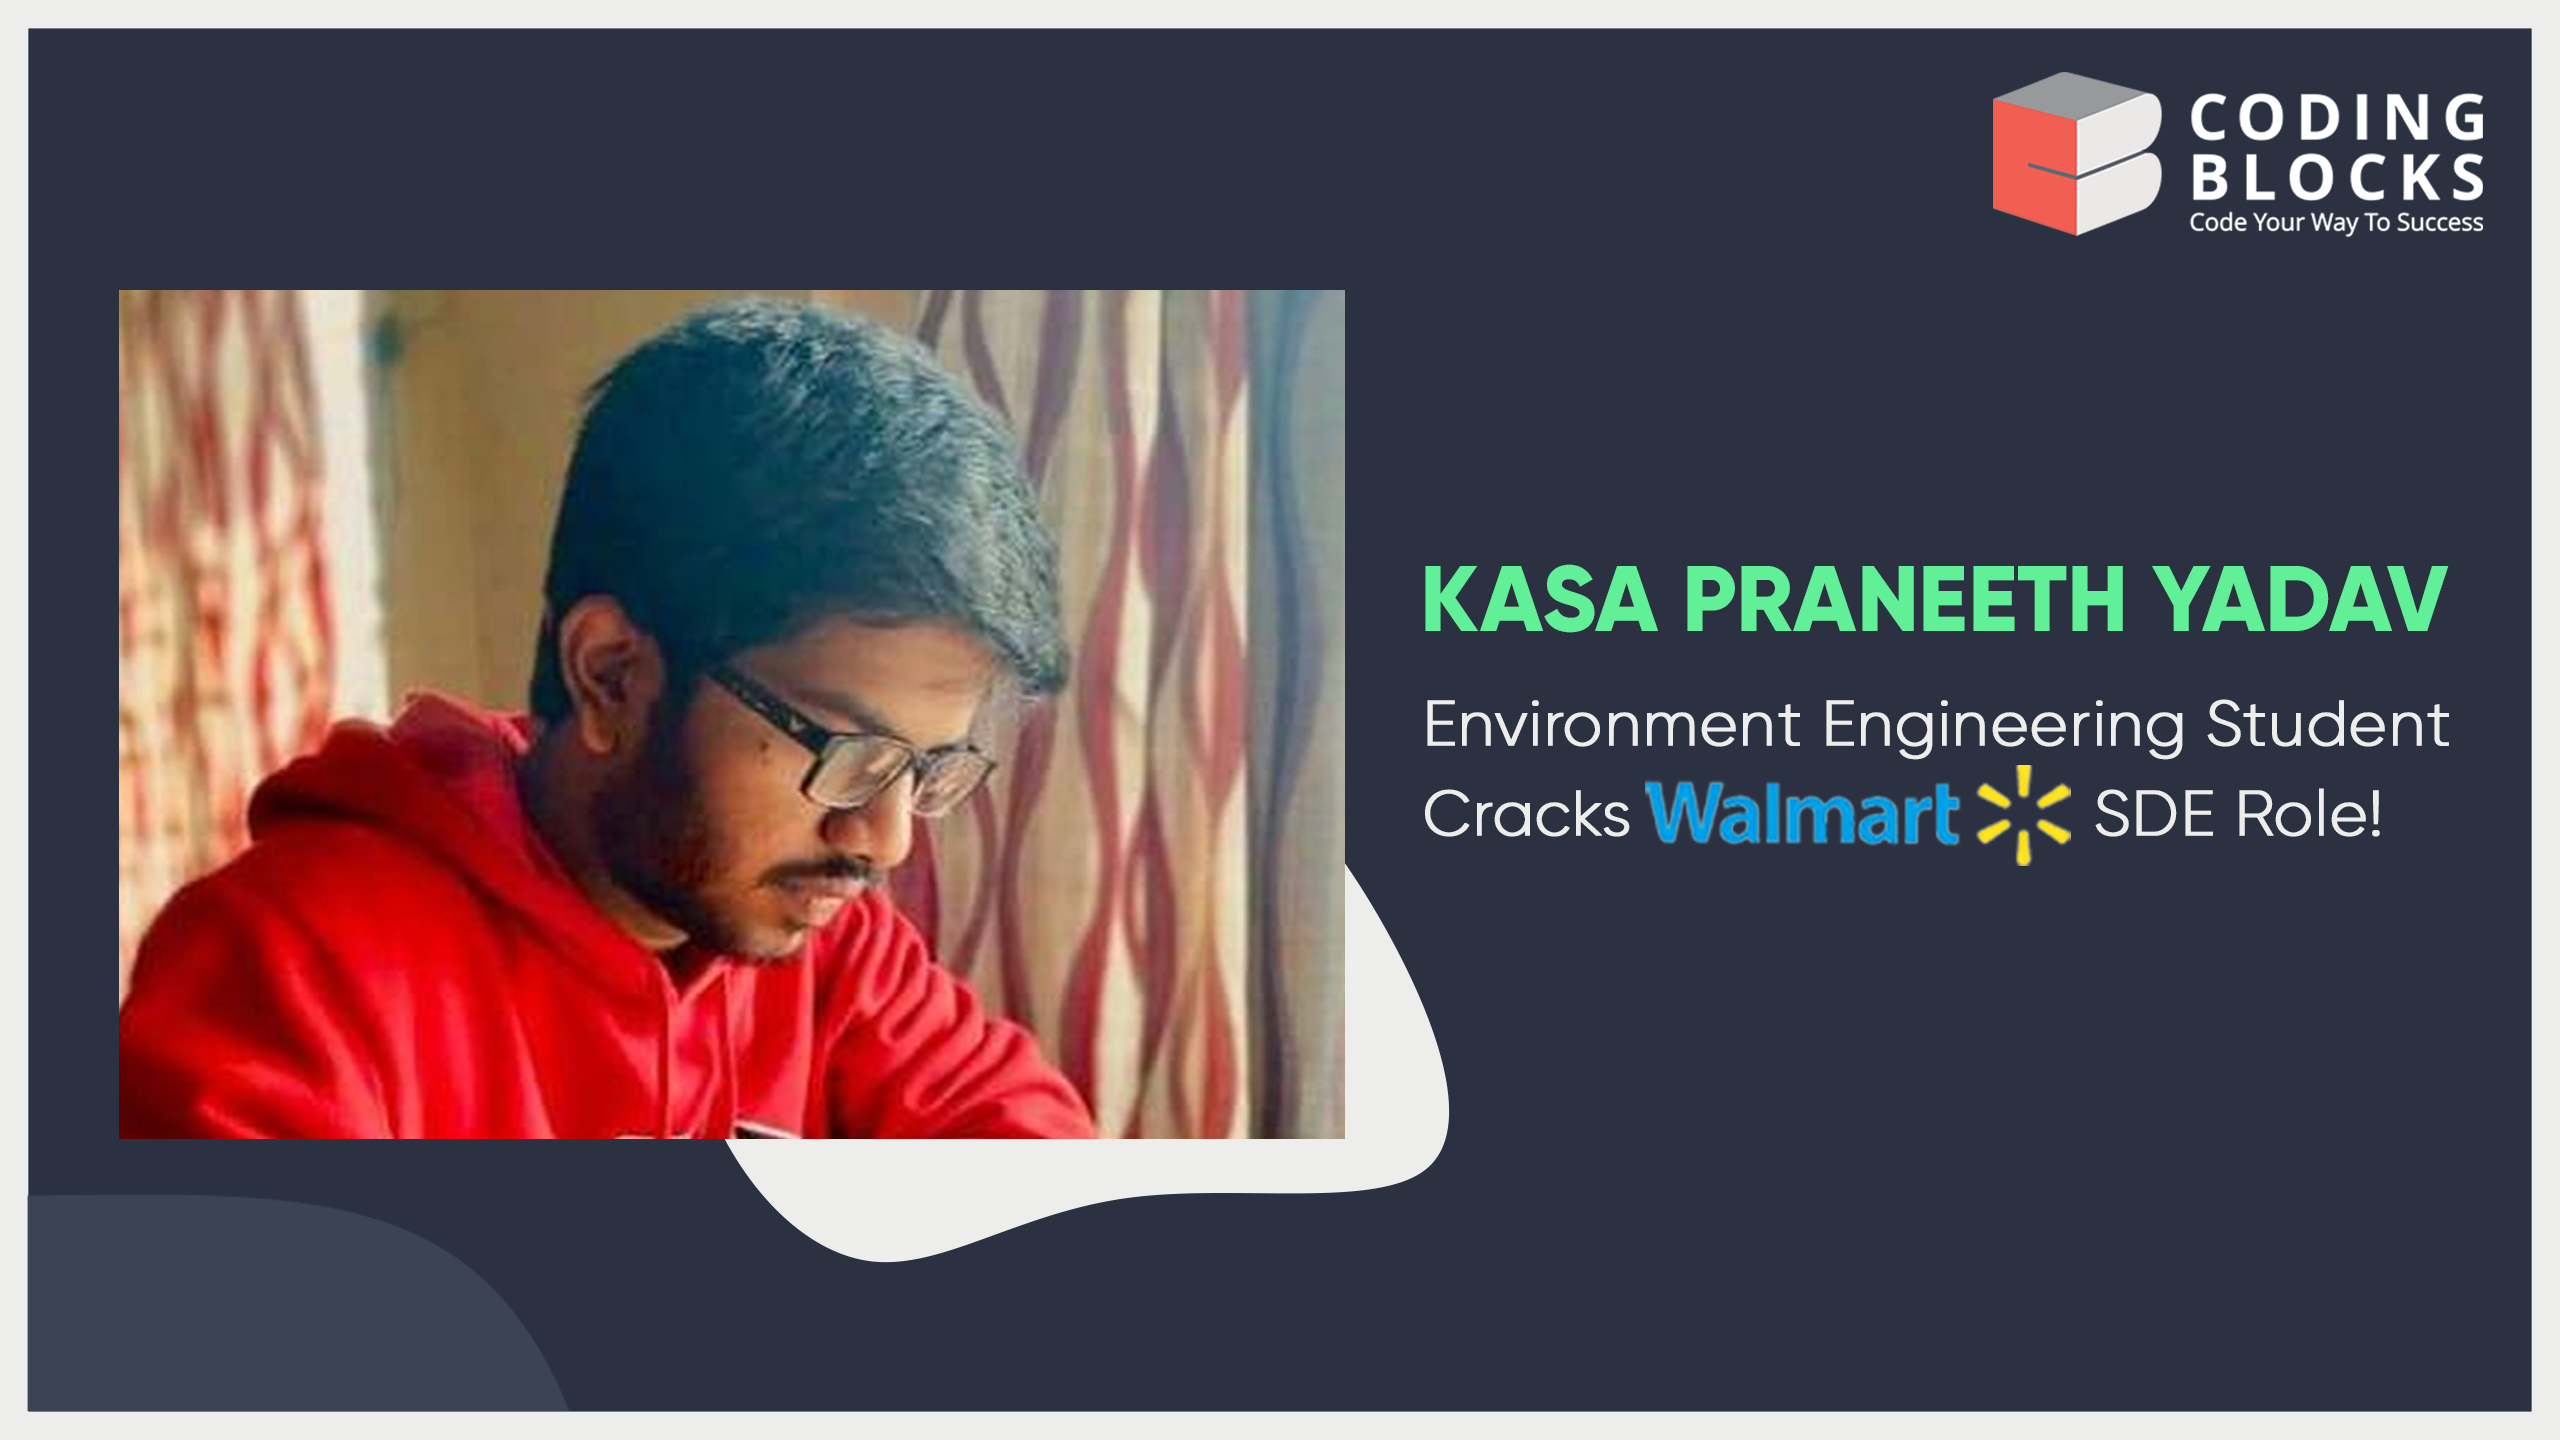 Environment Engineering Student Cracks Walmart SDE  Role - Know how ISM Dhanbad student made it possible!